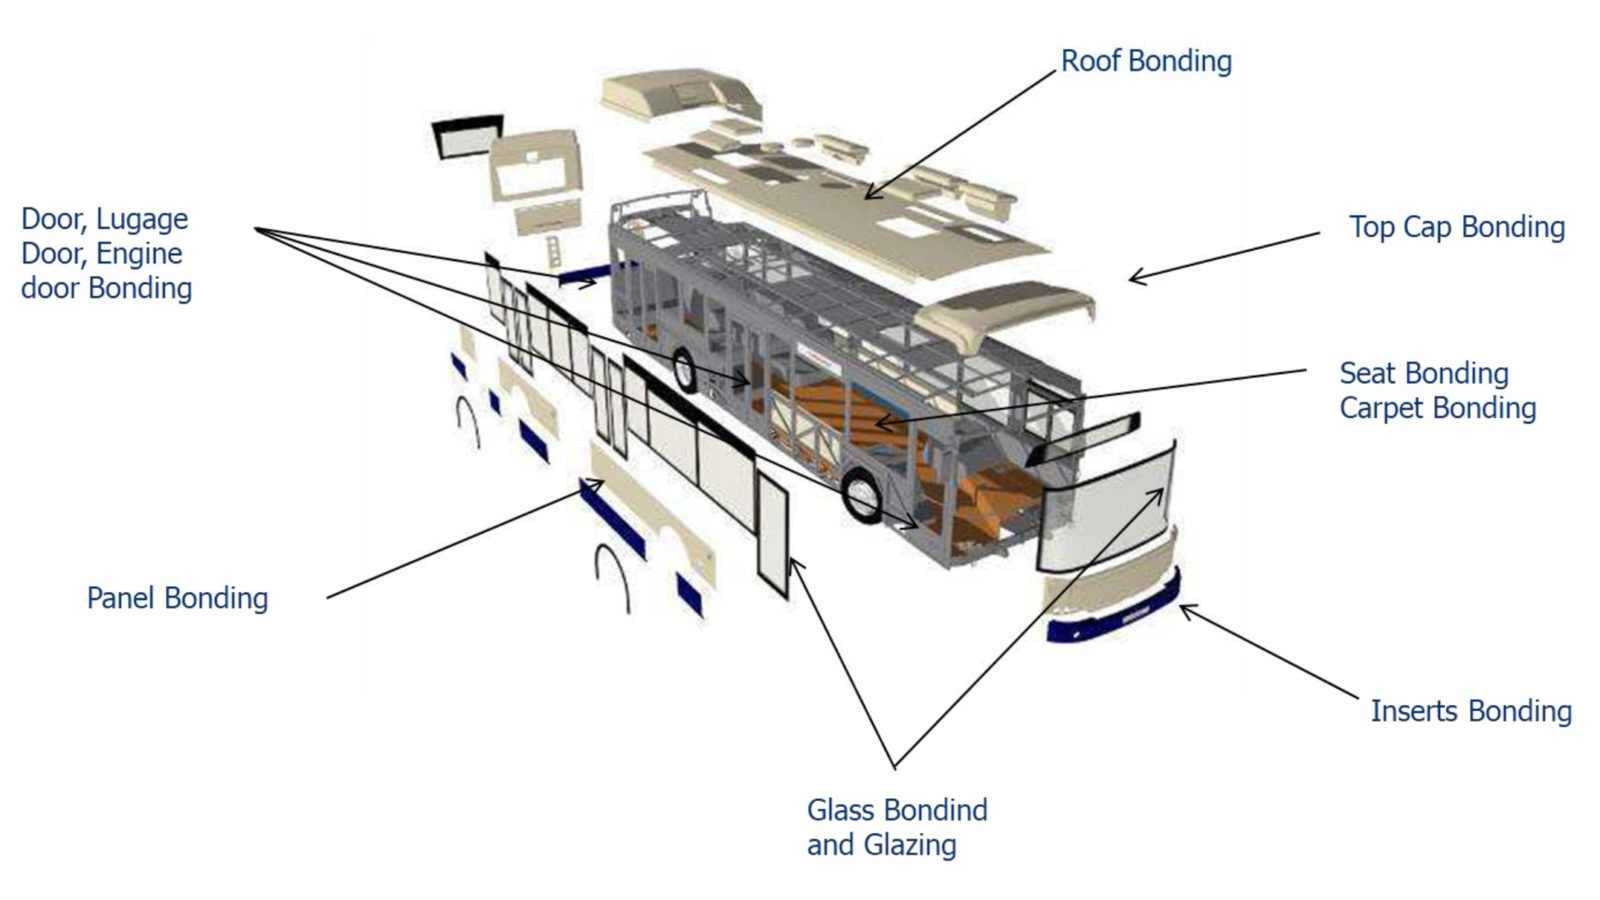 Bus-Applications-Image